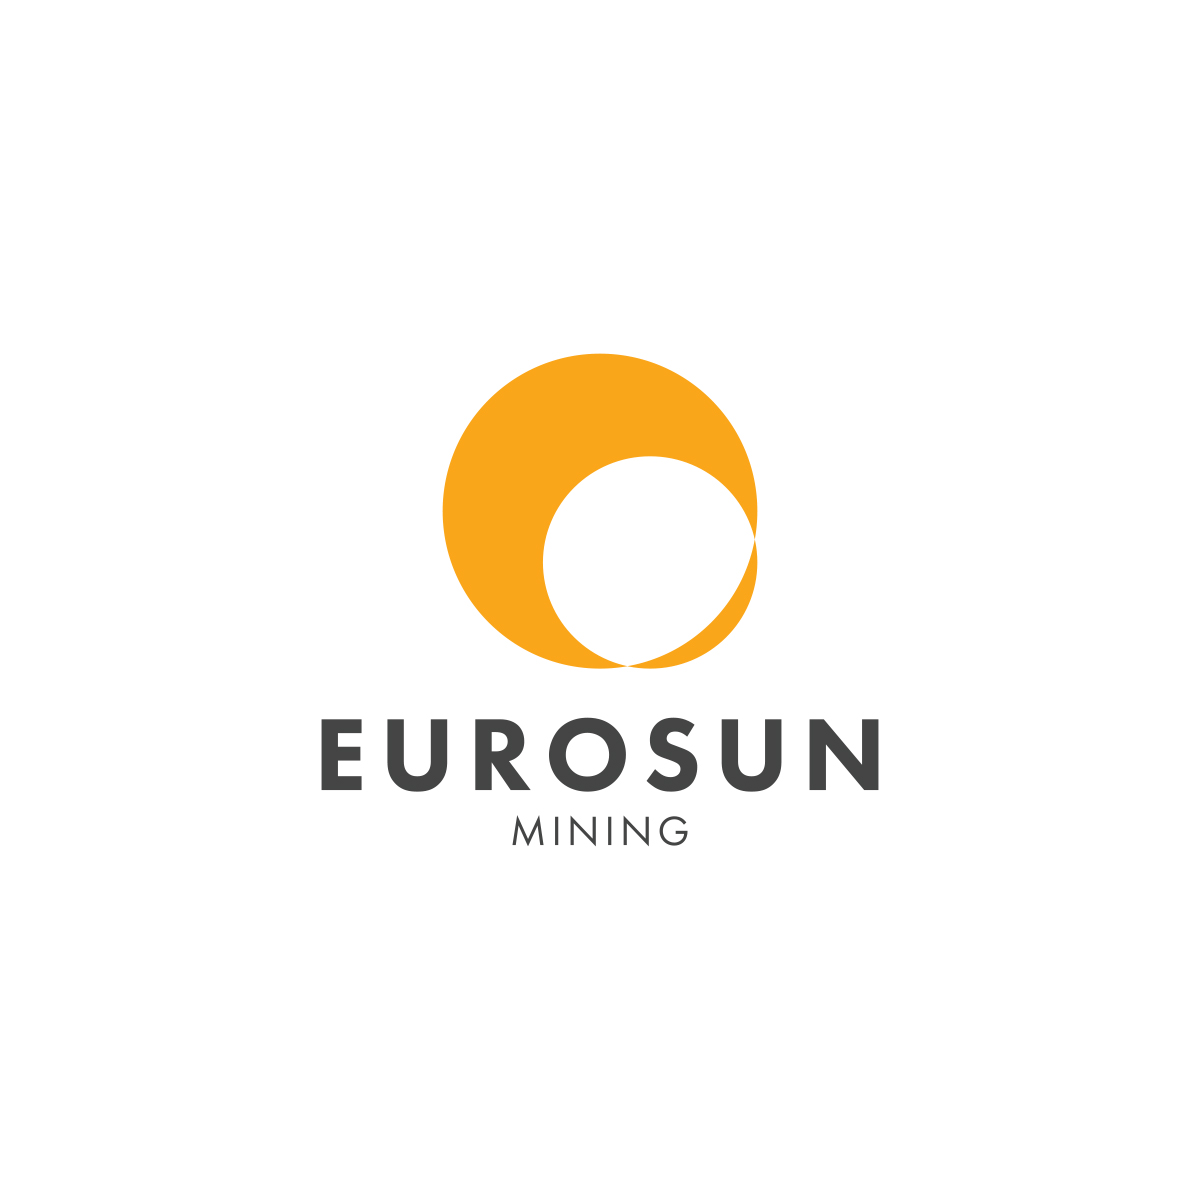 Is there an echo euro sun stock churns for European design firms